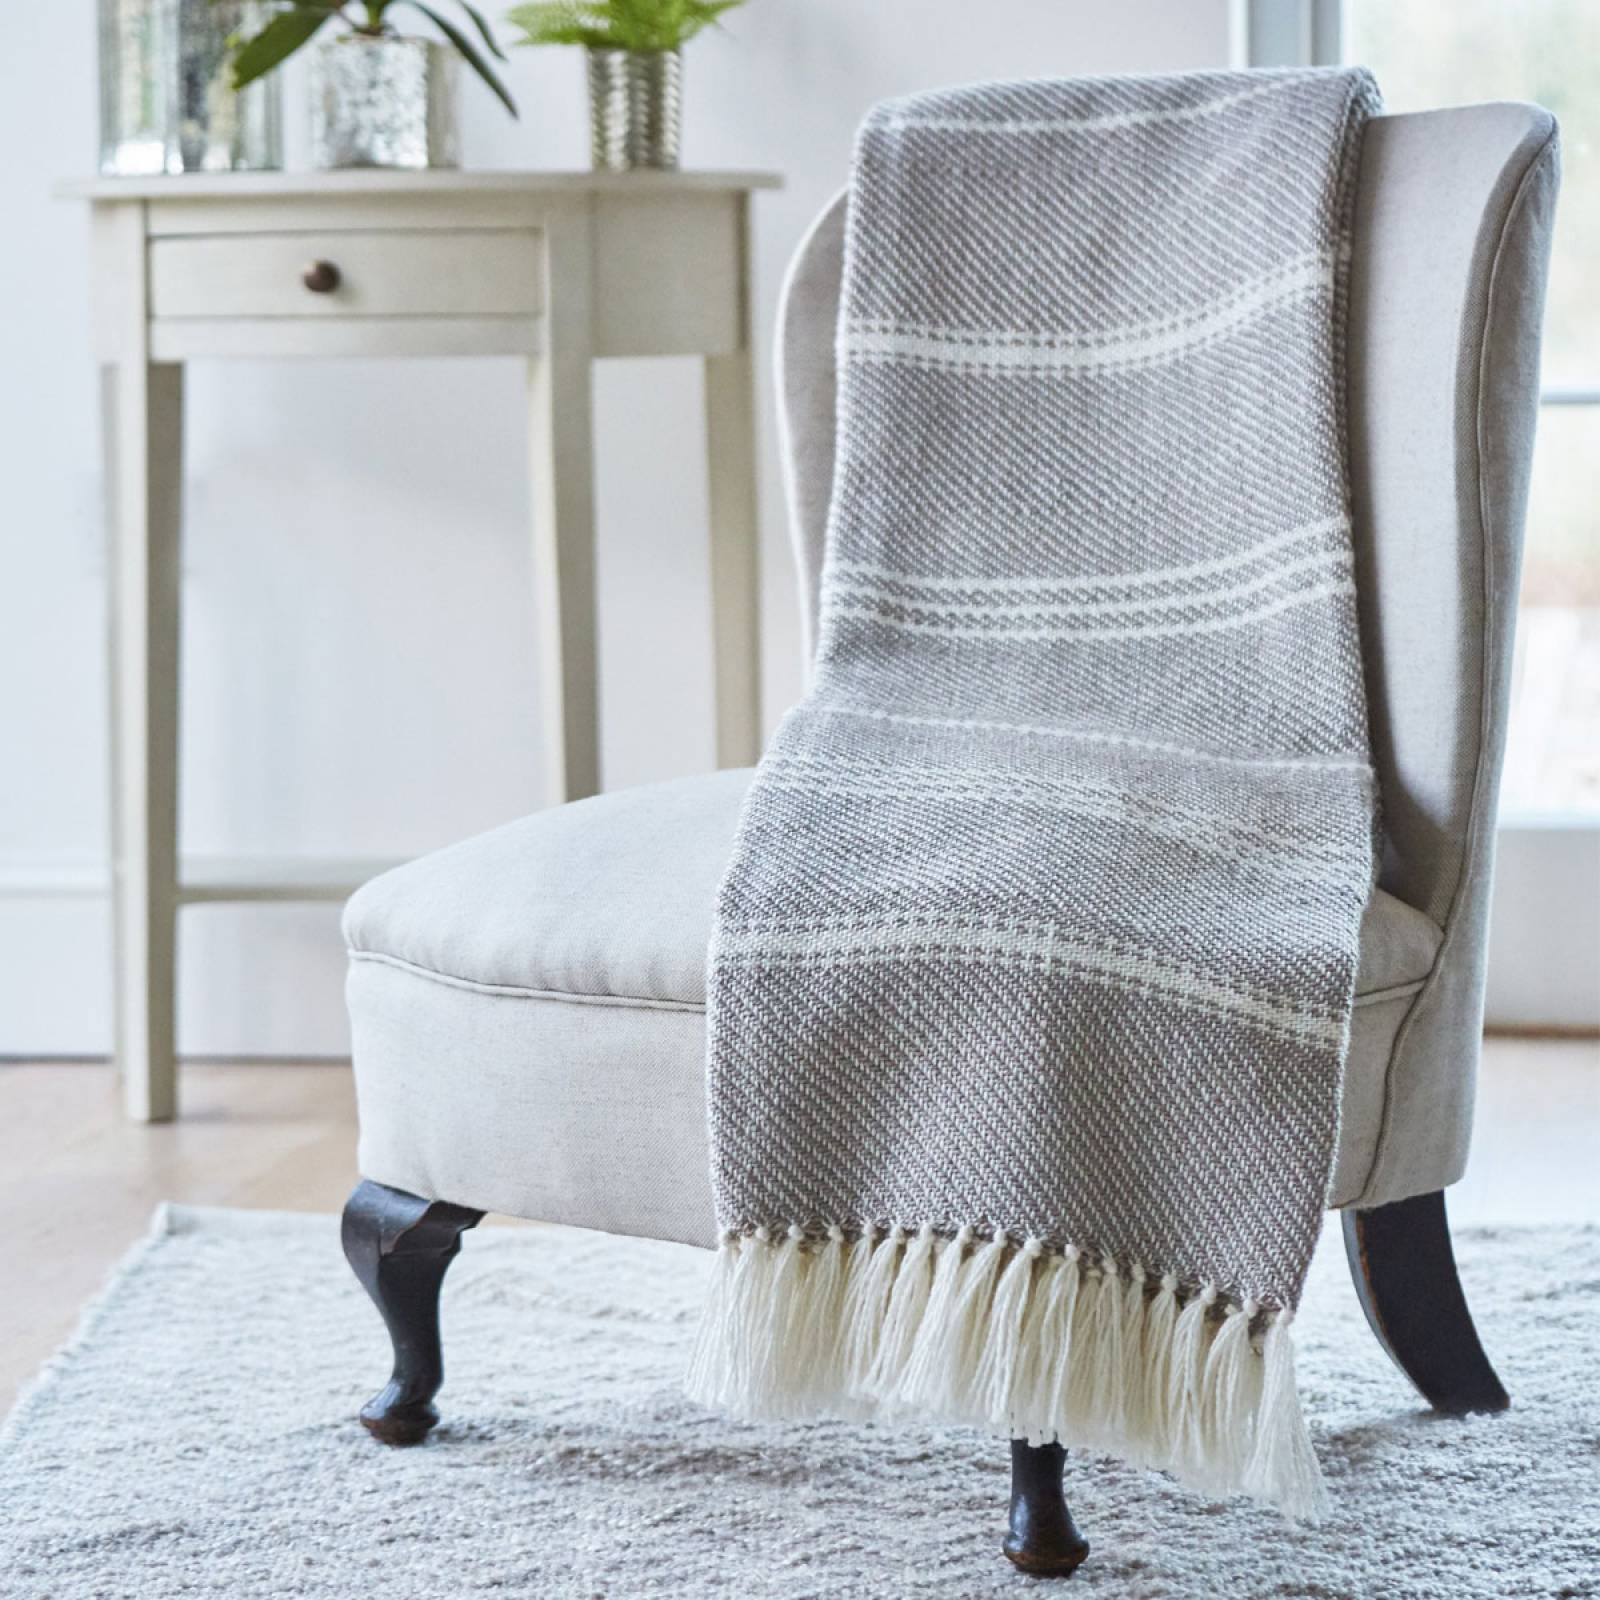 Chinchilla Oxford Blanket From Recycled Bottles thumbnails